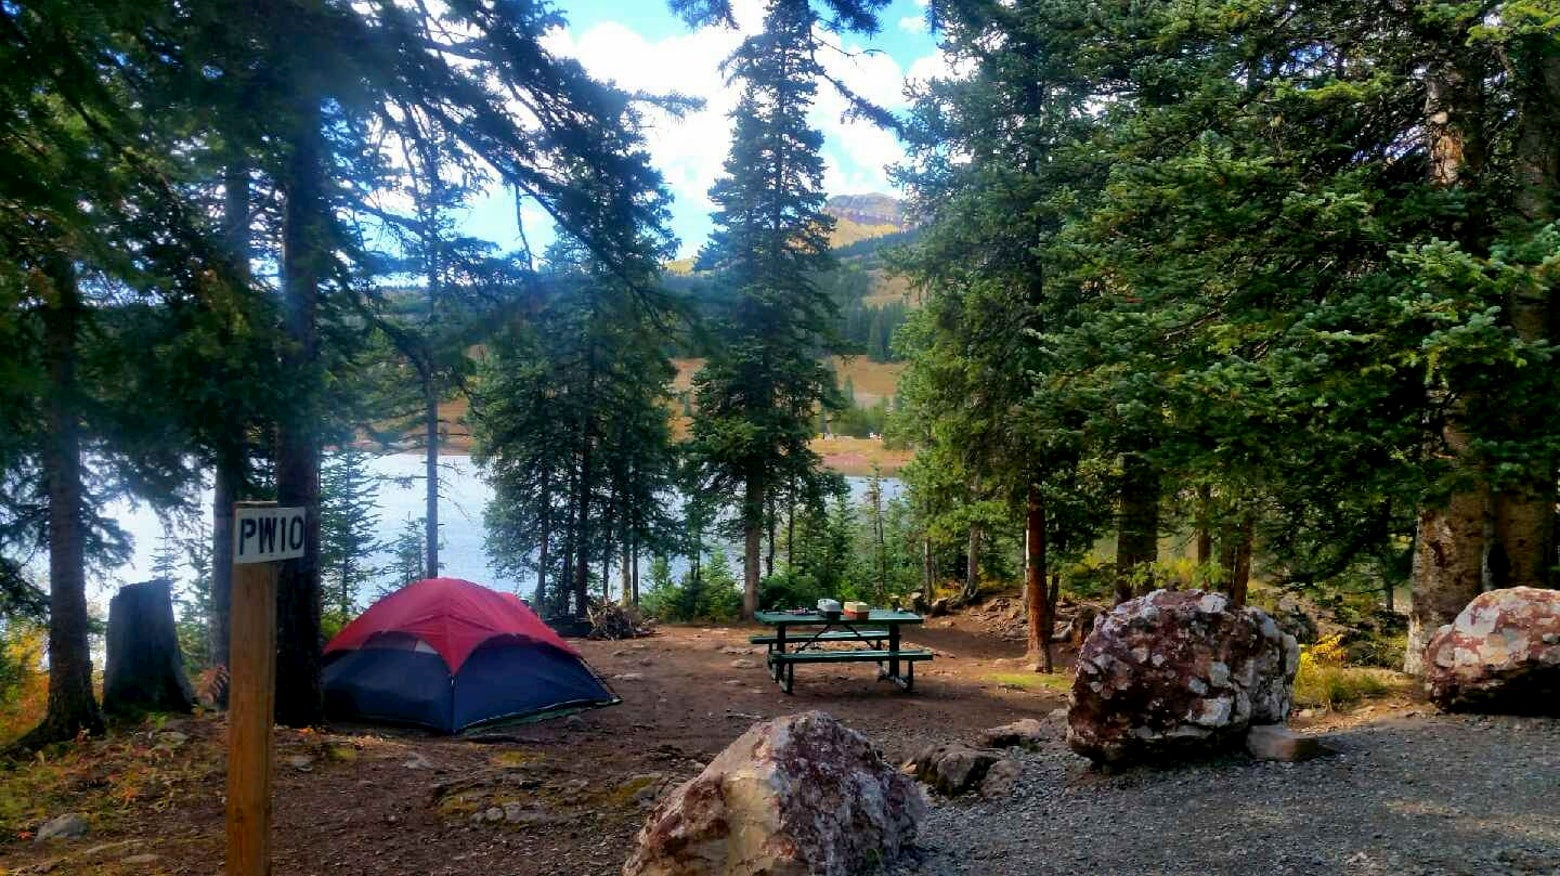 Lakeside campsite with tent and picnic table.